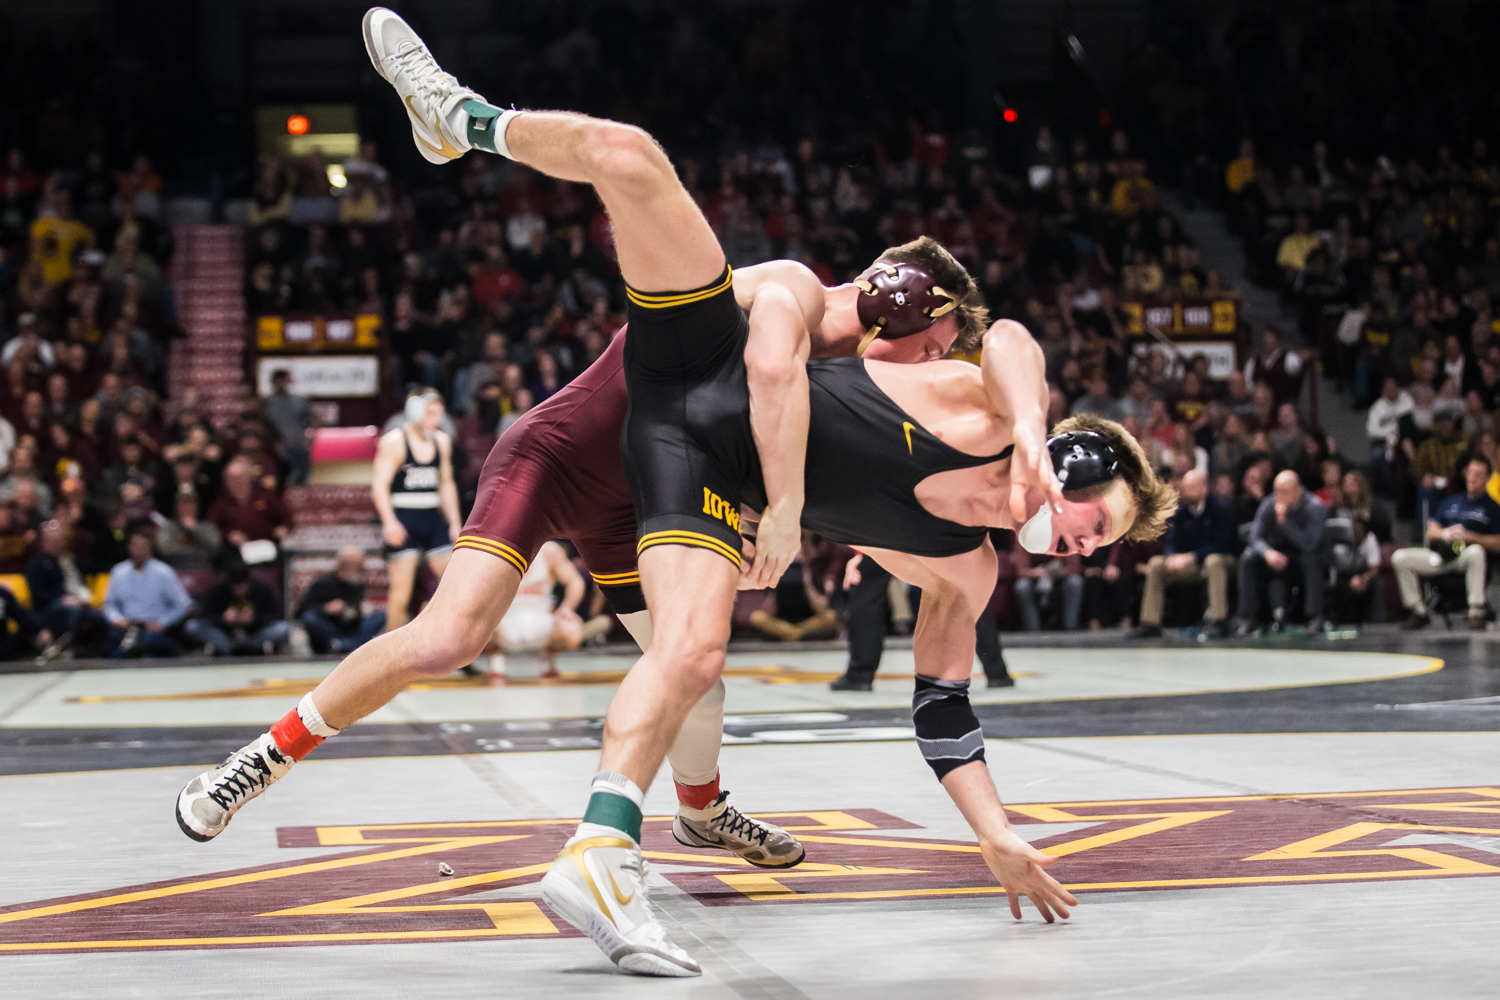 Iowa's 141-lb Max Murin wrestles Minnesota's Mitch McKee during the second session of the 2019 Big Ten Wrestling Championships in Minneapolis, MN on Saturday, March 9, 2019. McKee won by decision, 2-1.